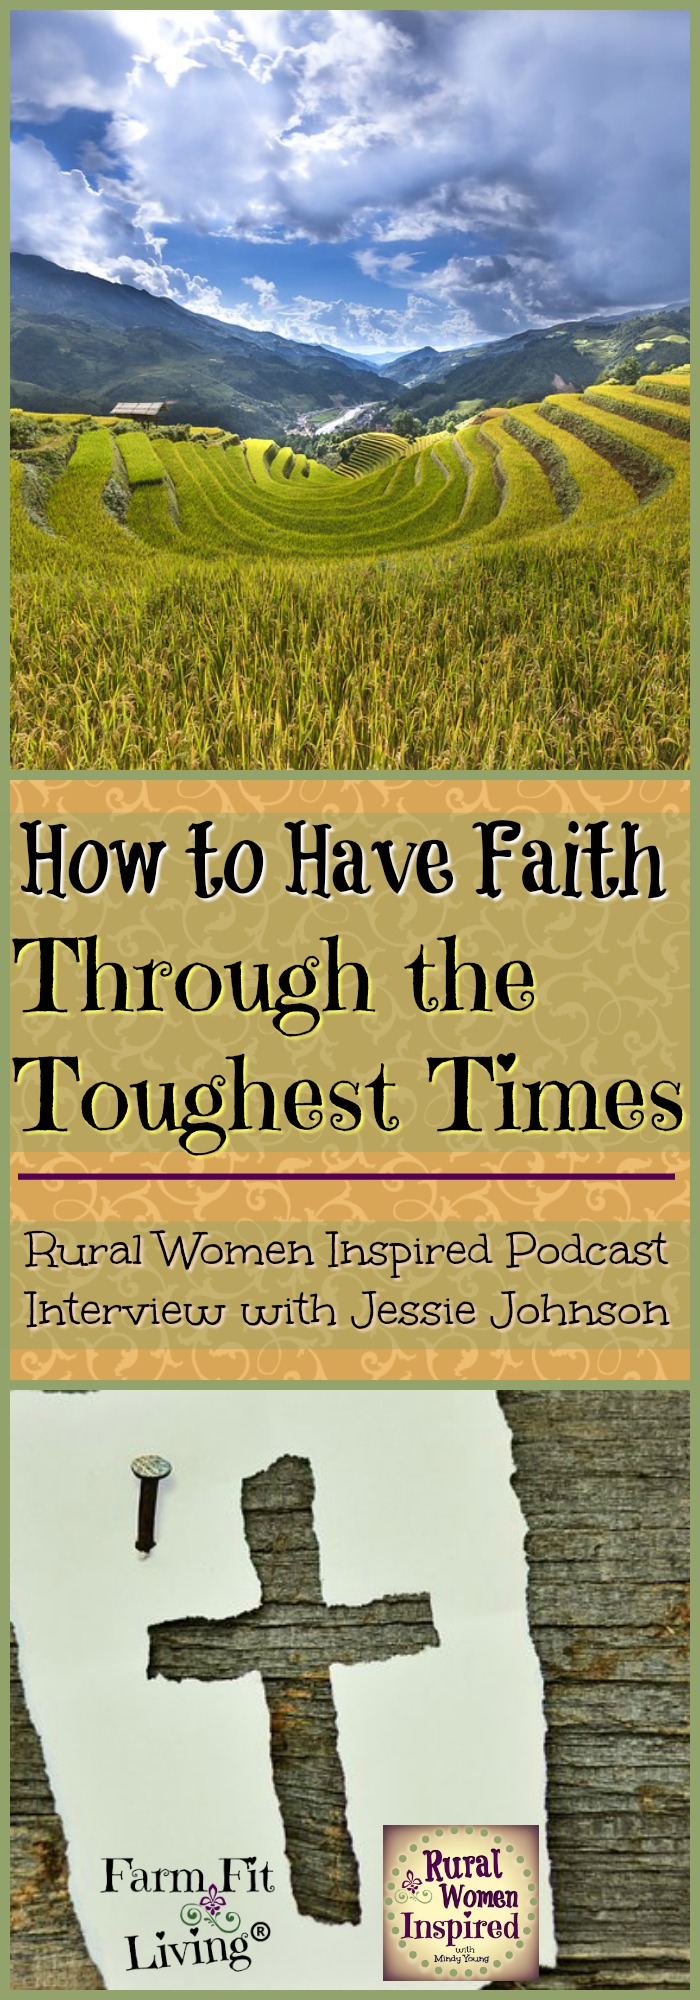 Are you facing tough times ahead? Or maybe you're in the midst of it with nowhere to go but upwards. Jessie Johnson talks about how to have faith through the toughest times.